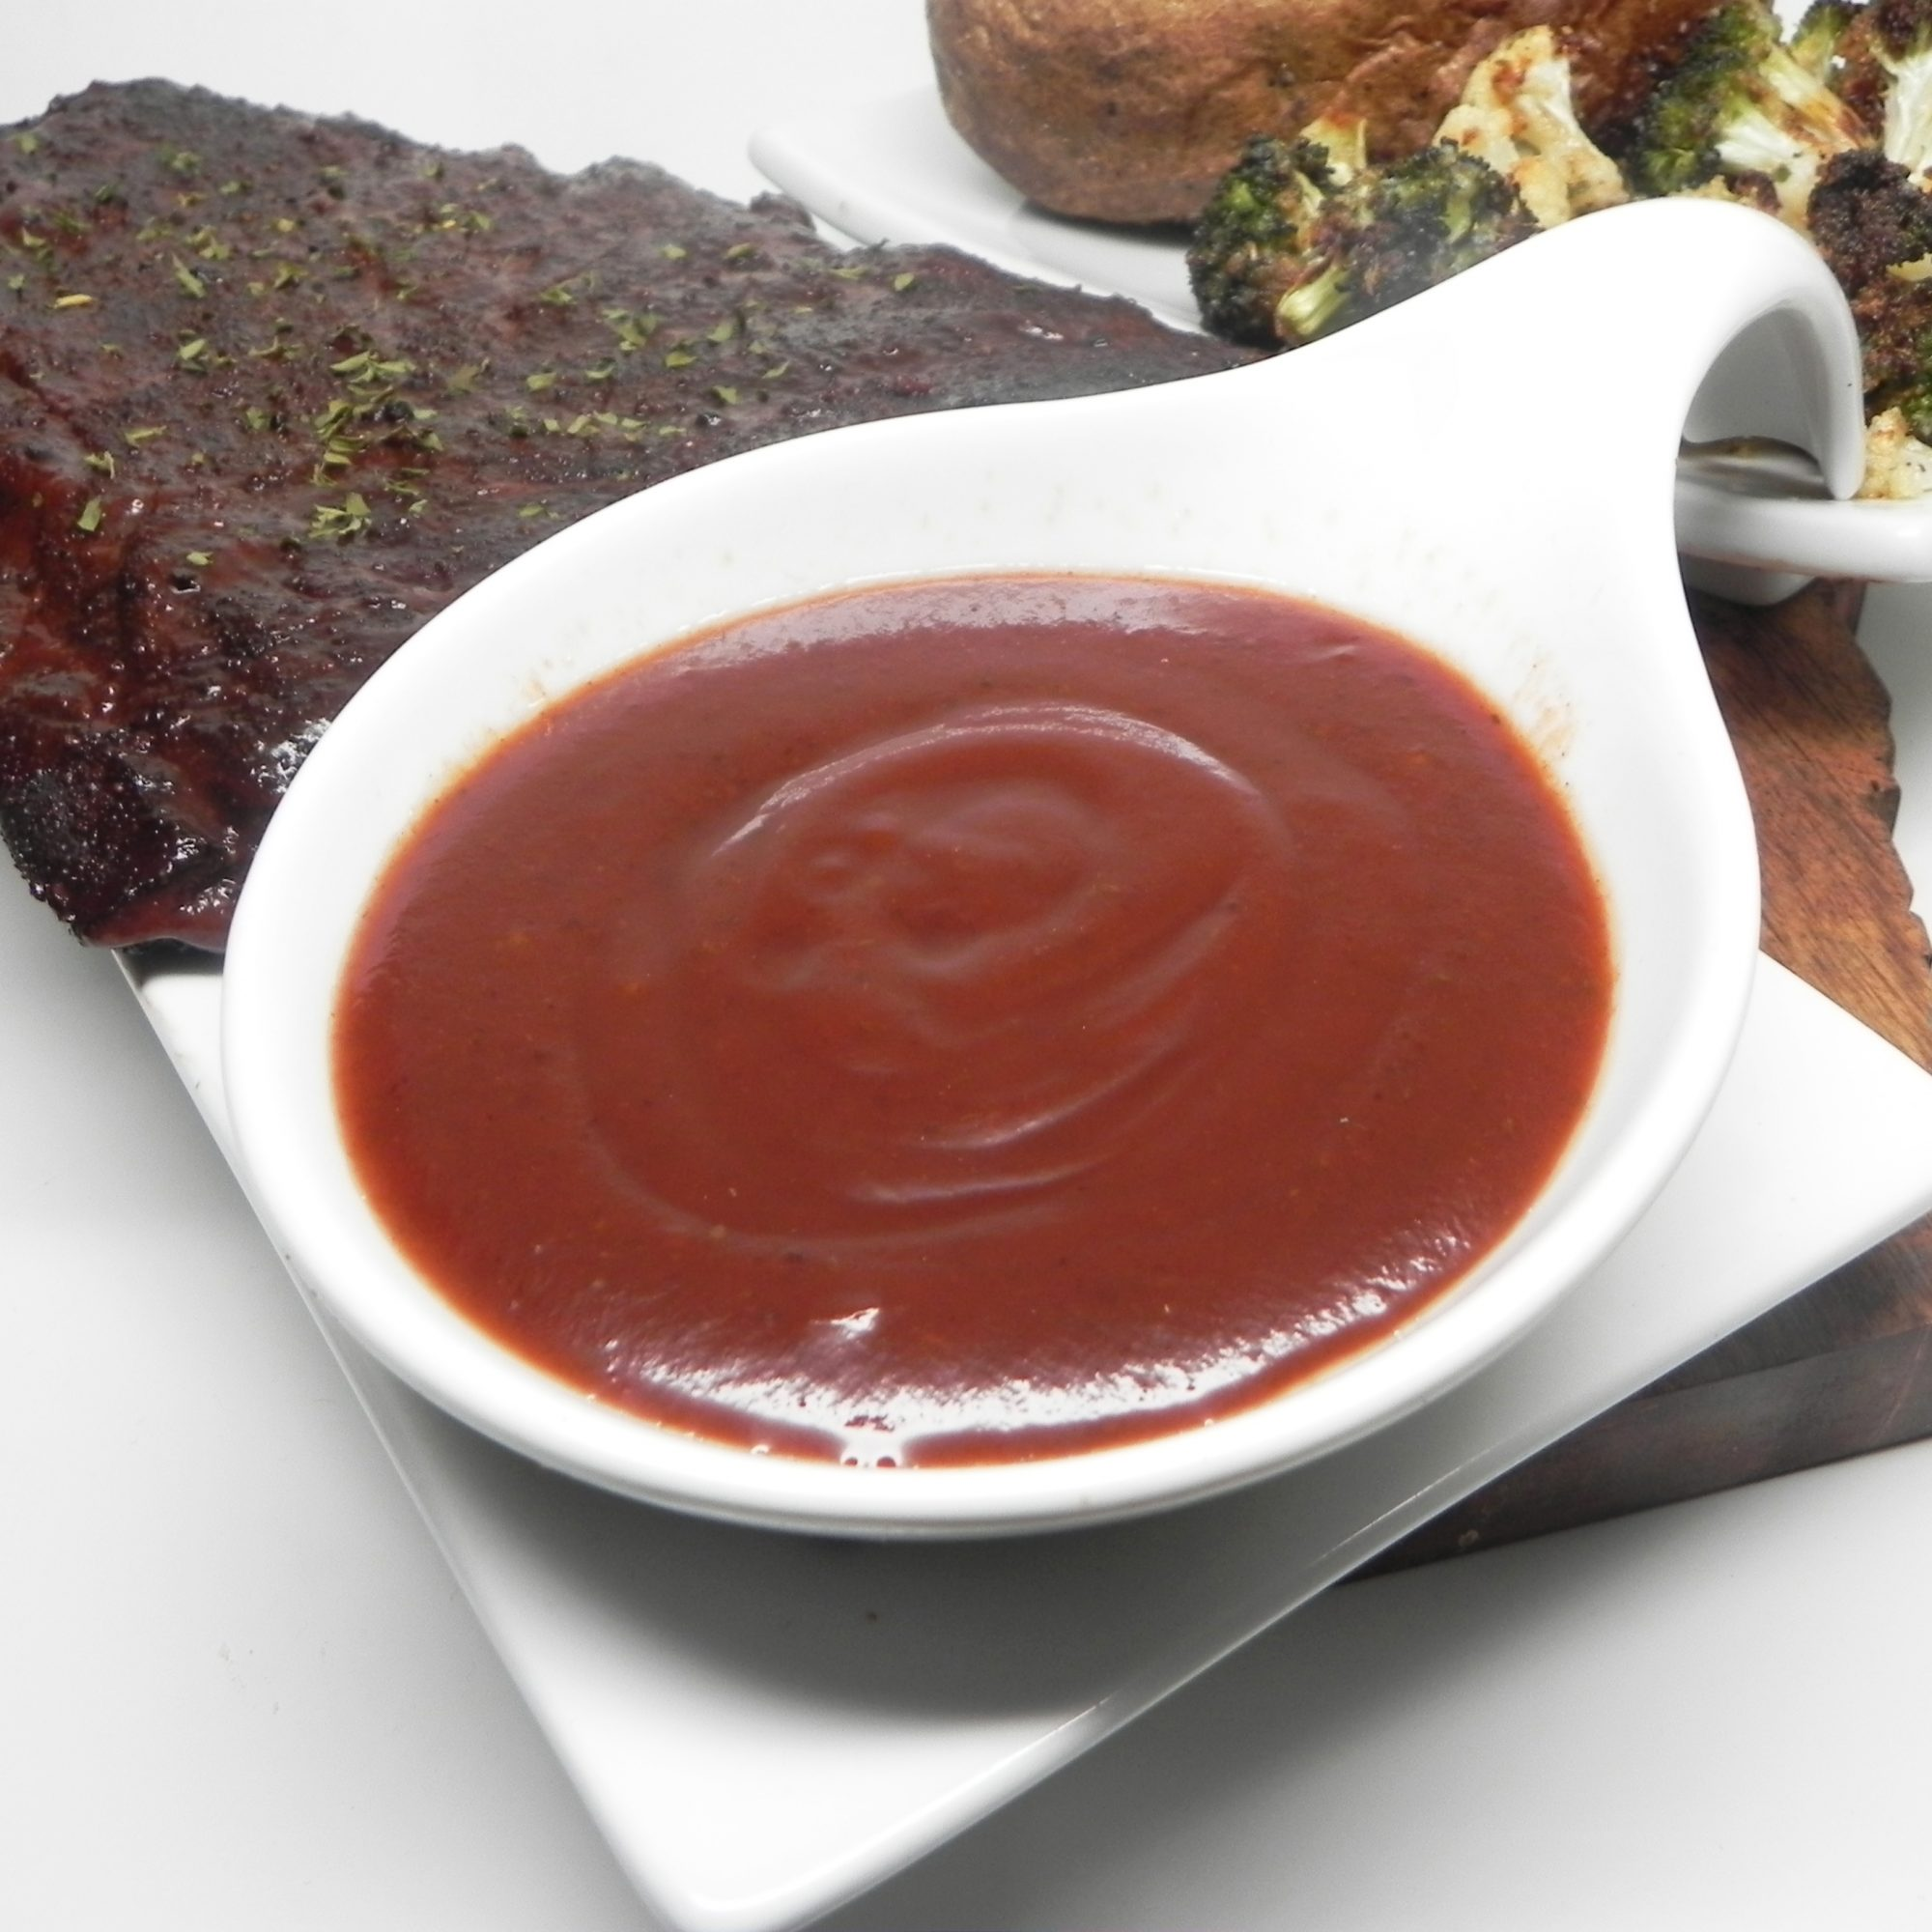 Rockin' Baby Back Ribs Sauce in a white bowl